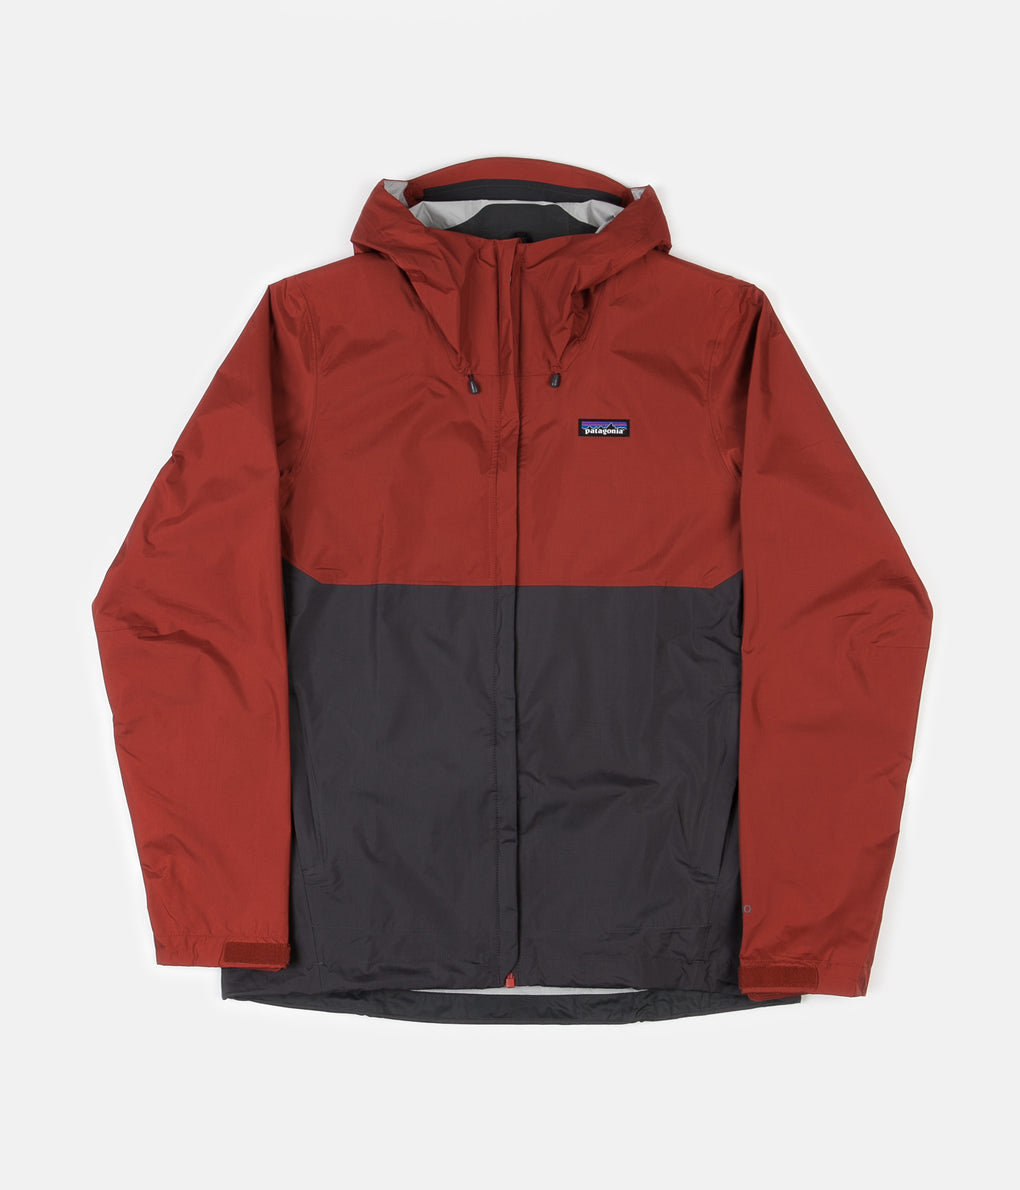 Patagonia Torrentshell Jacket - New Adobe